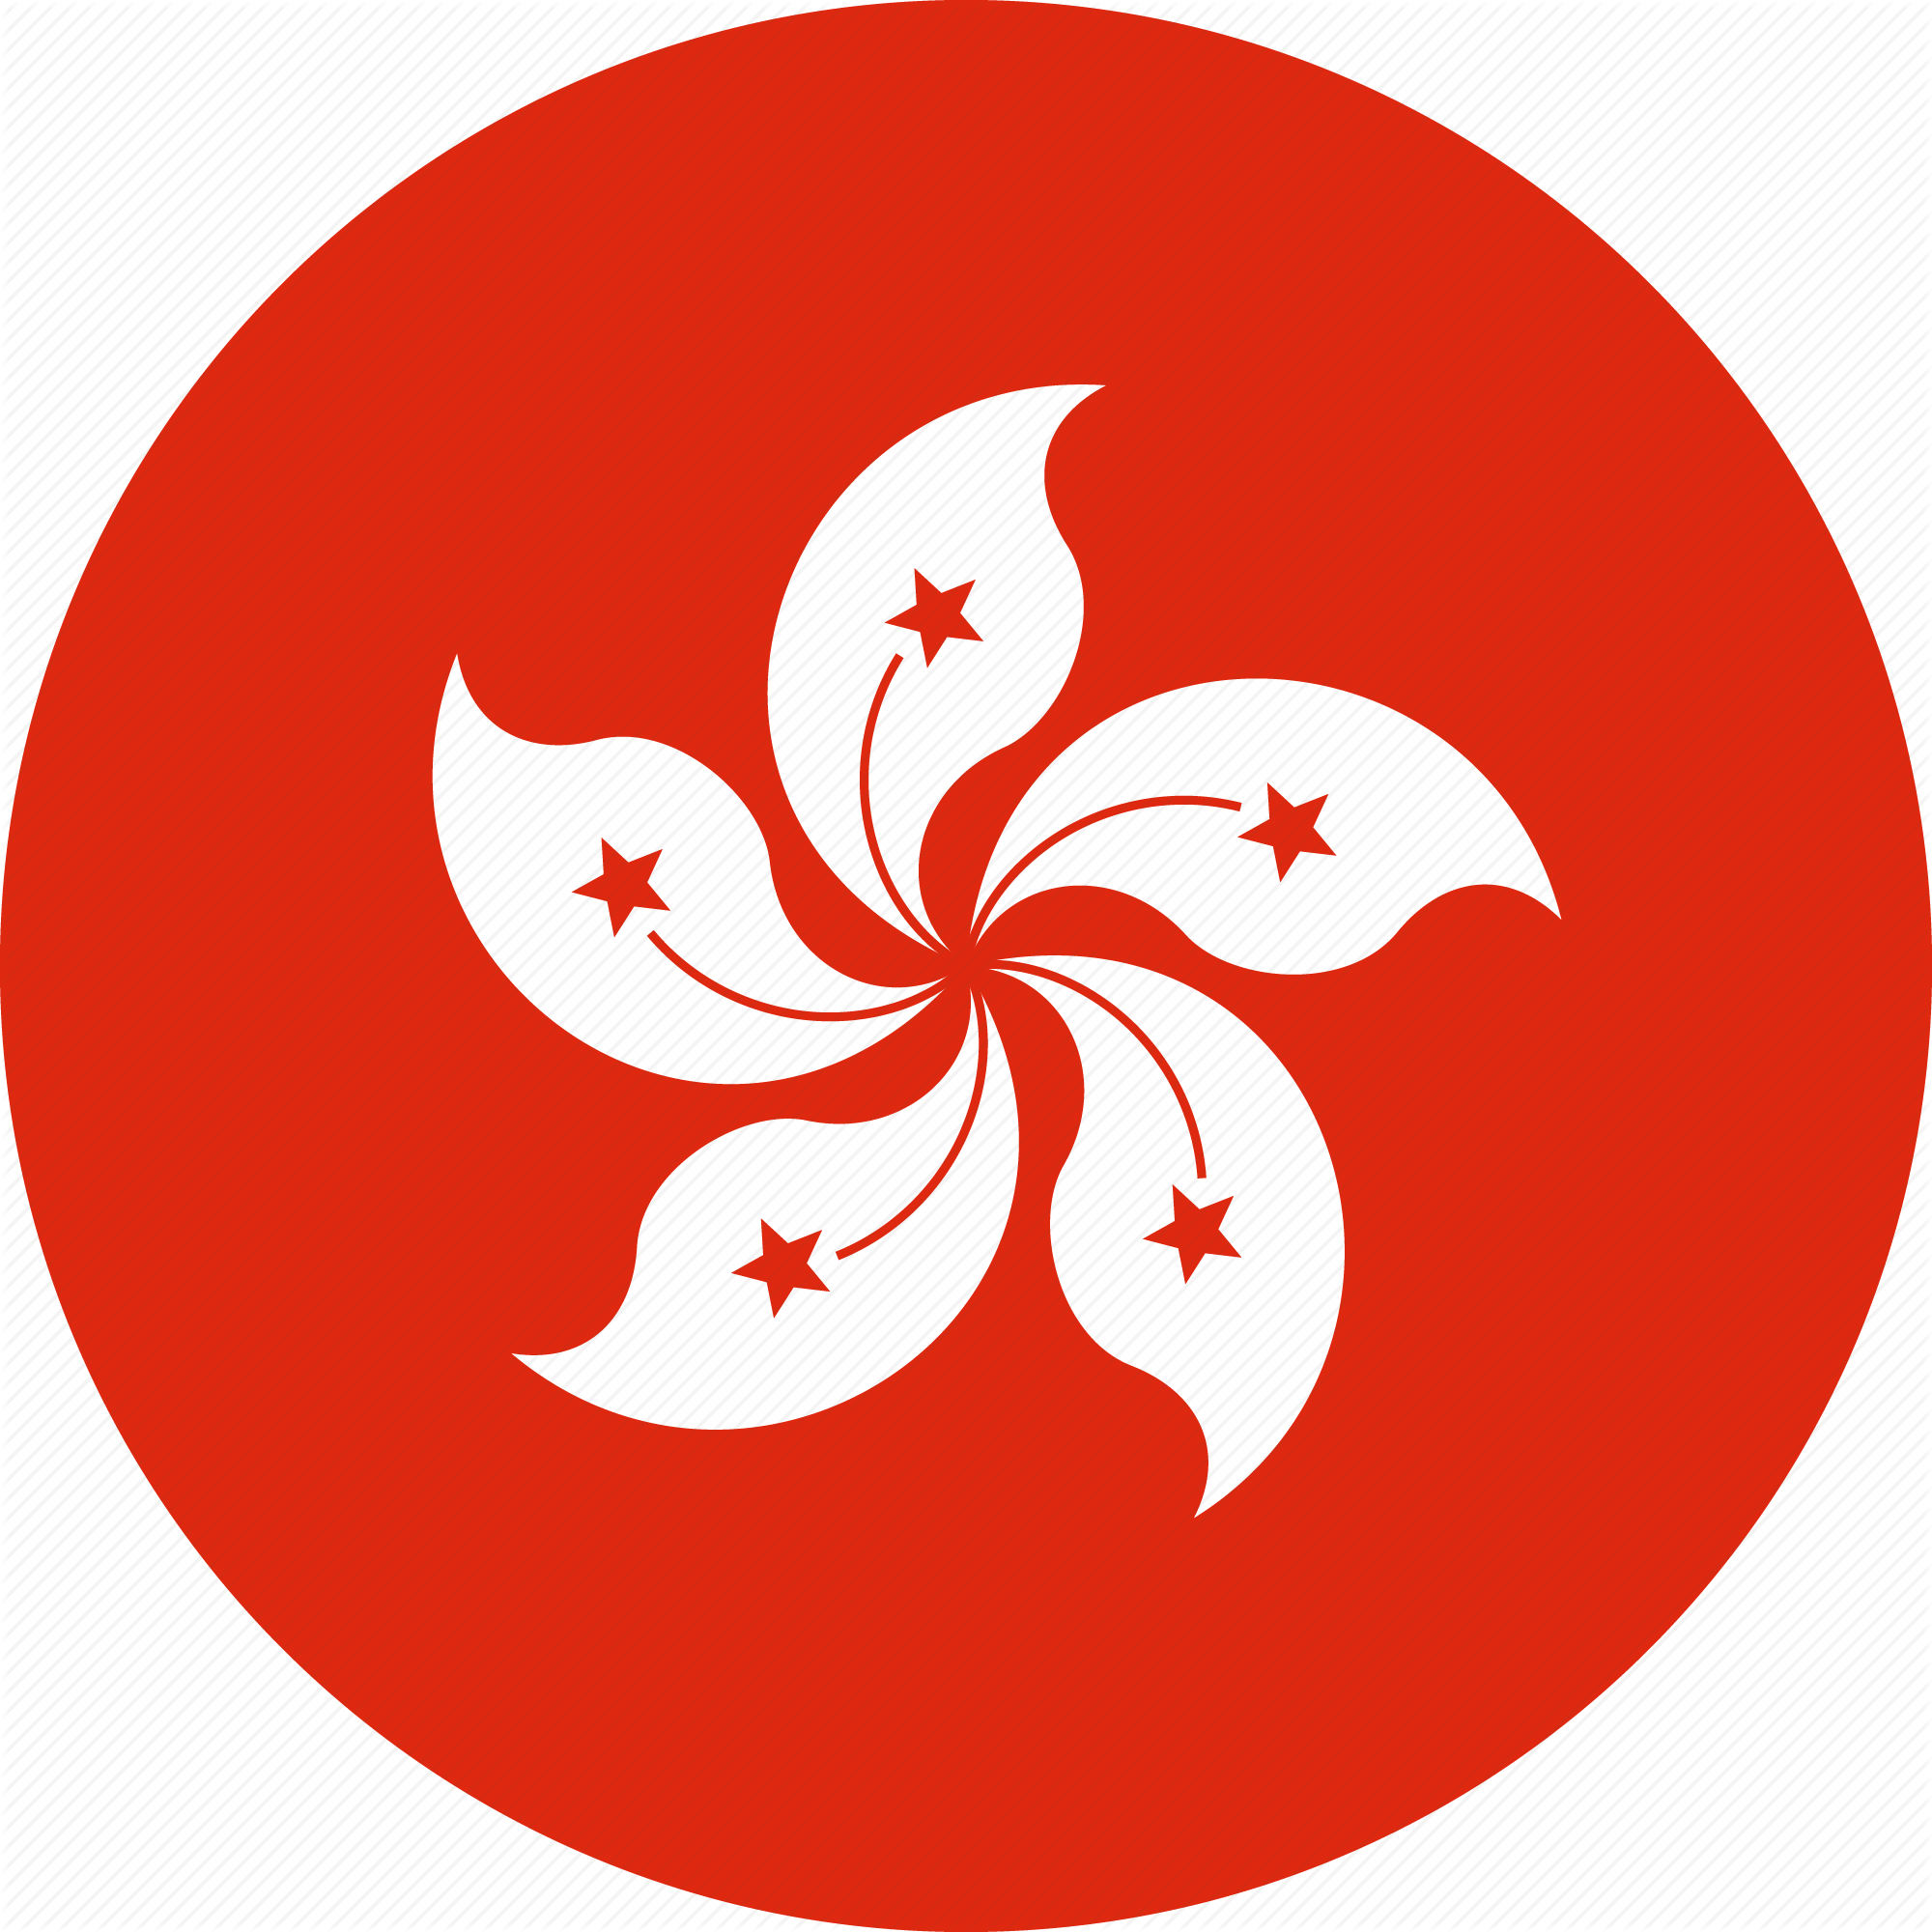 Flag of Hong Kong Wikipedia